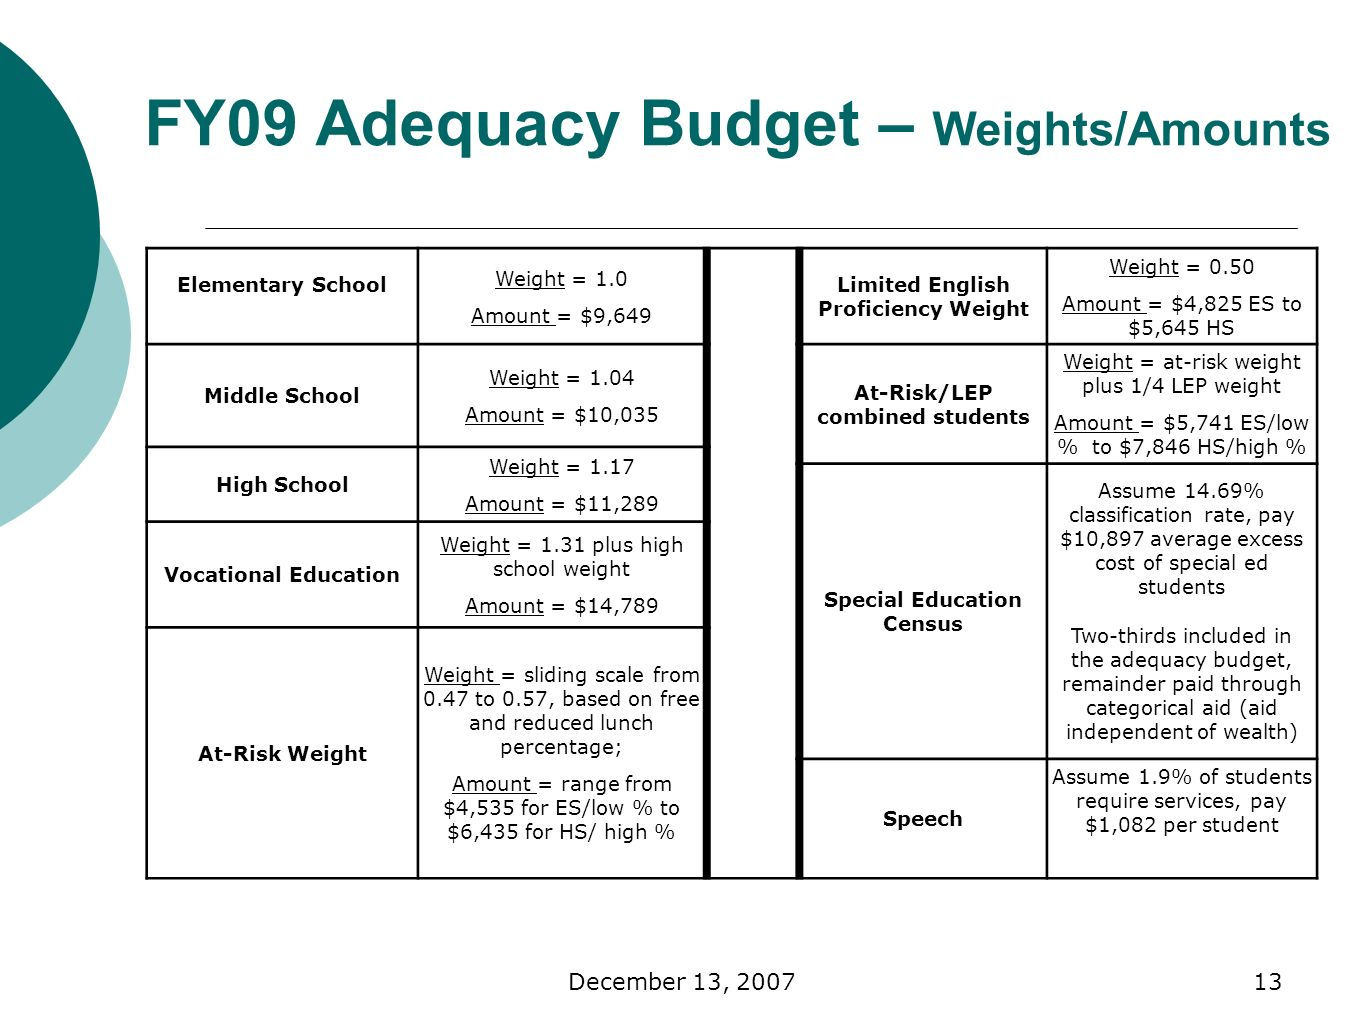 December 13, FY09 Adequacy Budget – Weights/Amounts Elementary School Weight = 1.0 Amount = $9,649 Limited English Proficiency Weight Weight = 0.50 Amount = $4,825 ES to $5,645 HS Middle School Weight = 1.04 Amount = $10,035 At-Risk/LEP combined students Weight = at-risk weight plus 1/4 LEP weight Amount = $5,741 ES/low % to $7,846 HS/high % High School Weight = 1.17 Amount = $11,289 Special Education Census Assume 14.69% classification rate, pay $10,897 average excess cost of special ed students Two-thirds included in the adequacy budget, remainder paid through categorical aid (aid independent of wealth) Vocational Education Weight = 1.31 plus high school weight Amount = $14,789 At-Risk Weight Weight = sliding scale from 0.47 to 0.57, based on free and reduced lunch percentage; Amount = range from $4,535 for ES/low % to $6,435 for HS/ high % Speech Assume 1.9% of students require services, pay $1,082 per student